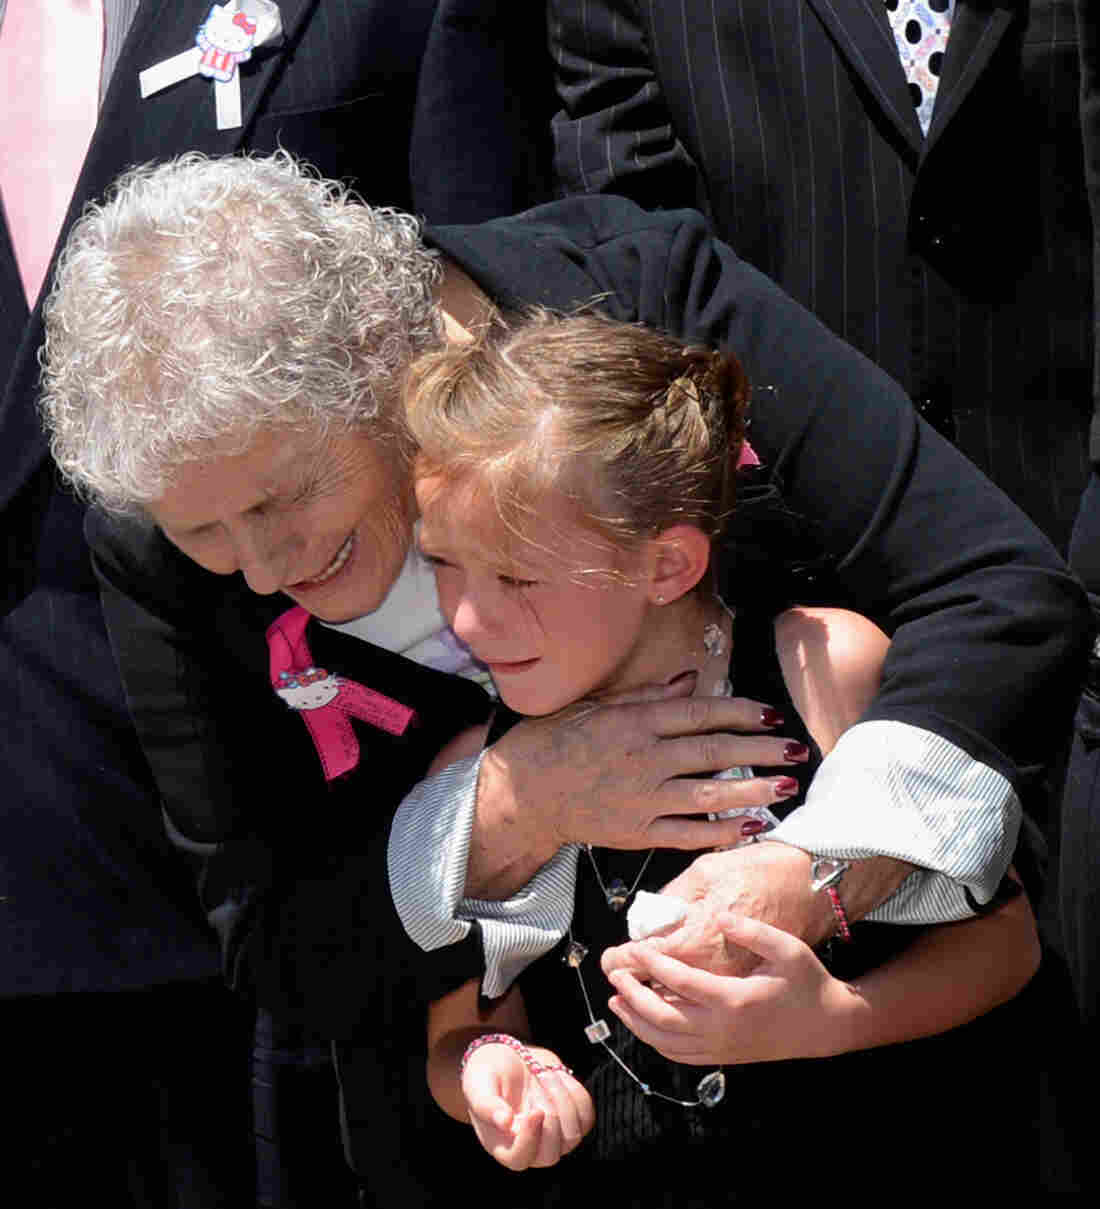 Grandma Marlene Kenobbe (L) comforts consoles Kailyn Vigil during Micayla Medek's funeral at the New Hope Baptist Church in Denver, Colorado.